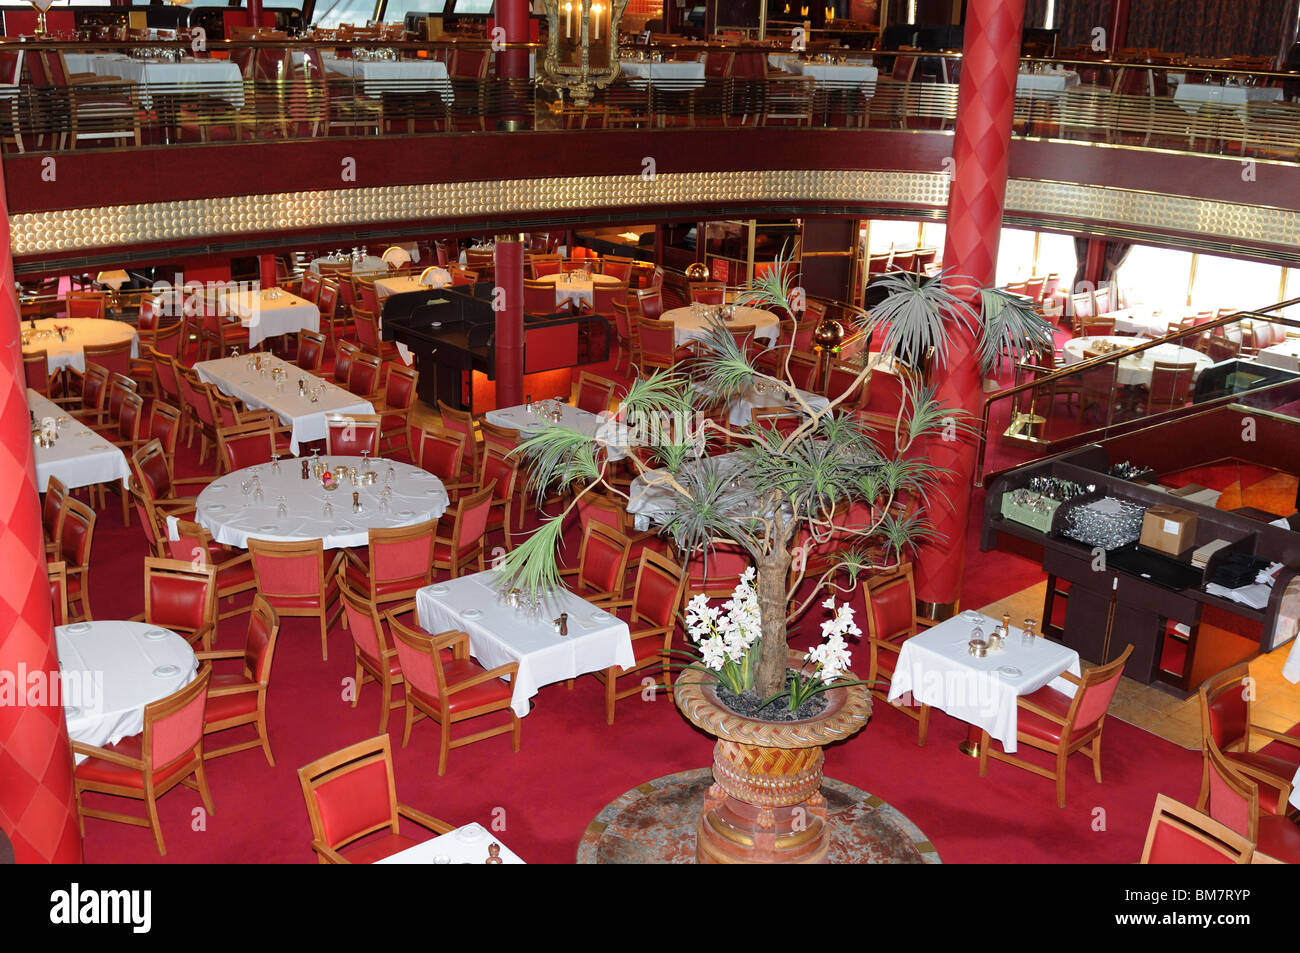 The Rotterdam Restaurant Aboard Holland America Lines Veendam May